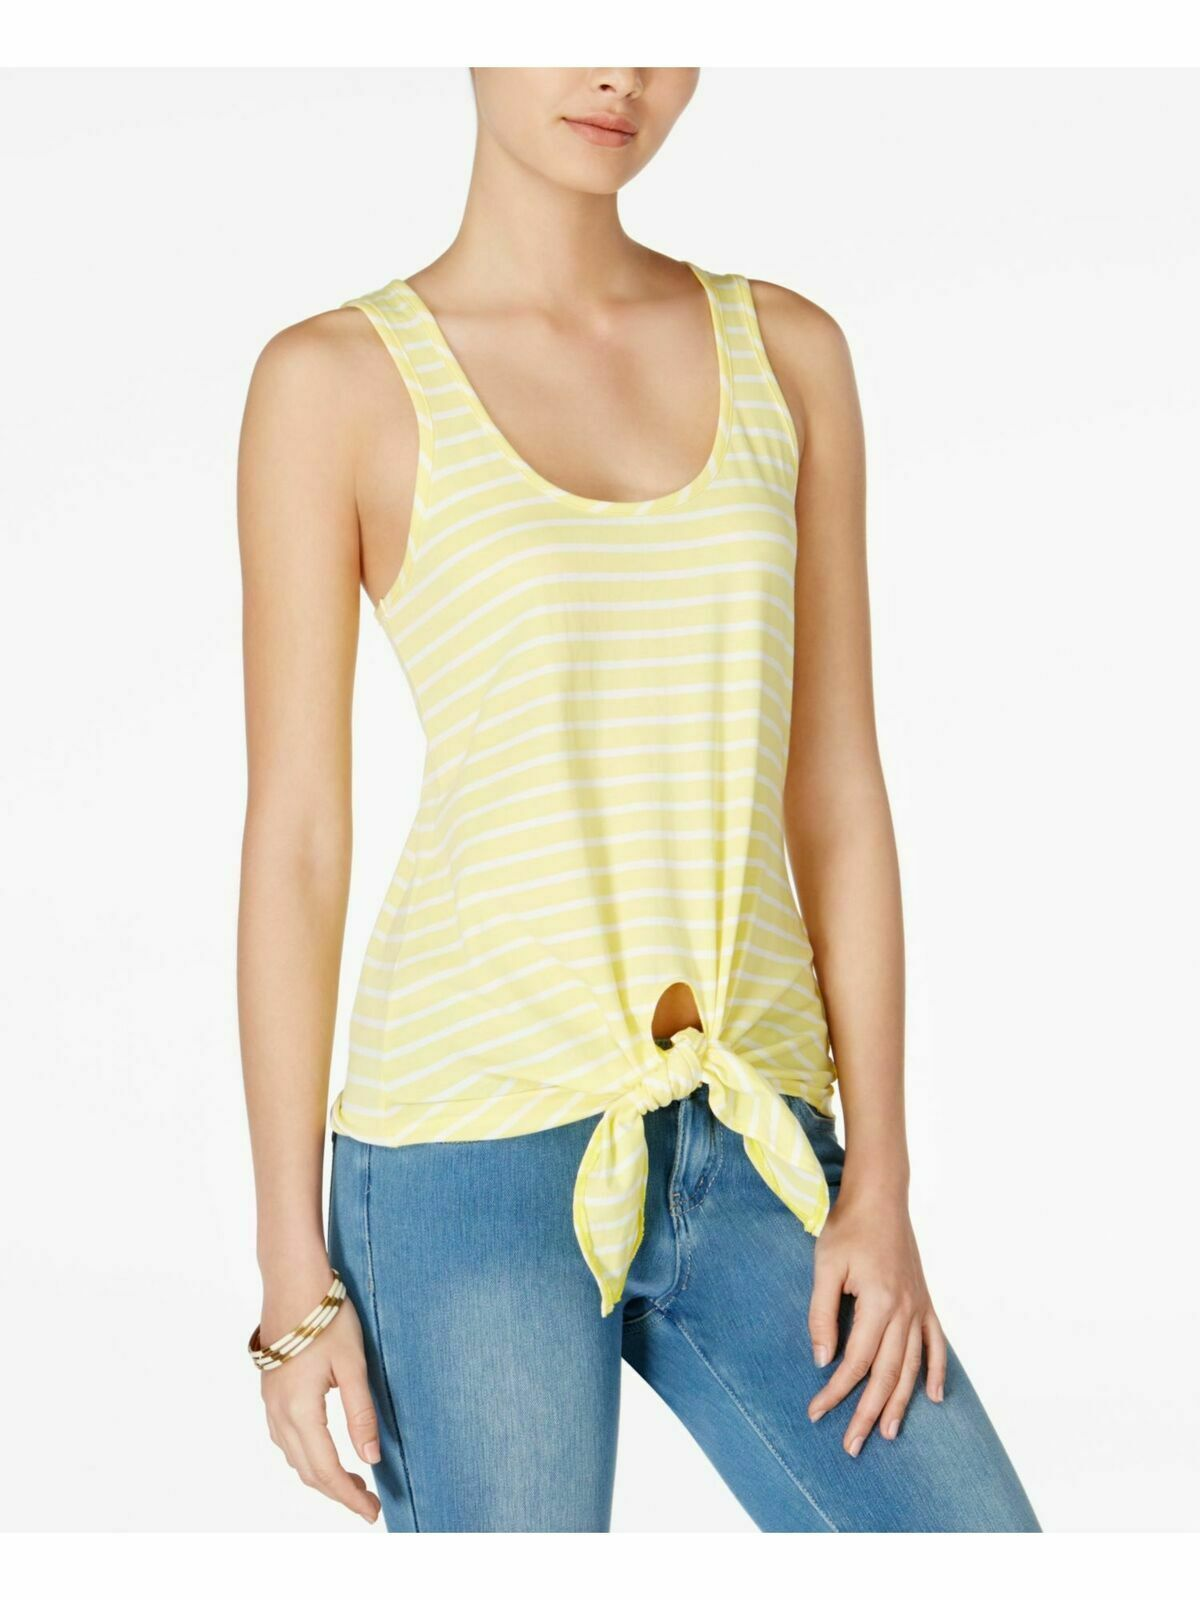 Primary image for Maison Jules Women's Acid Yellow Striped Cotton Tie-Hem Tank Top Size Large